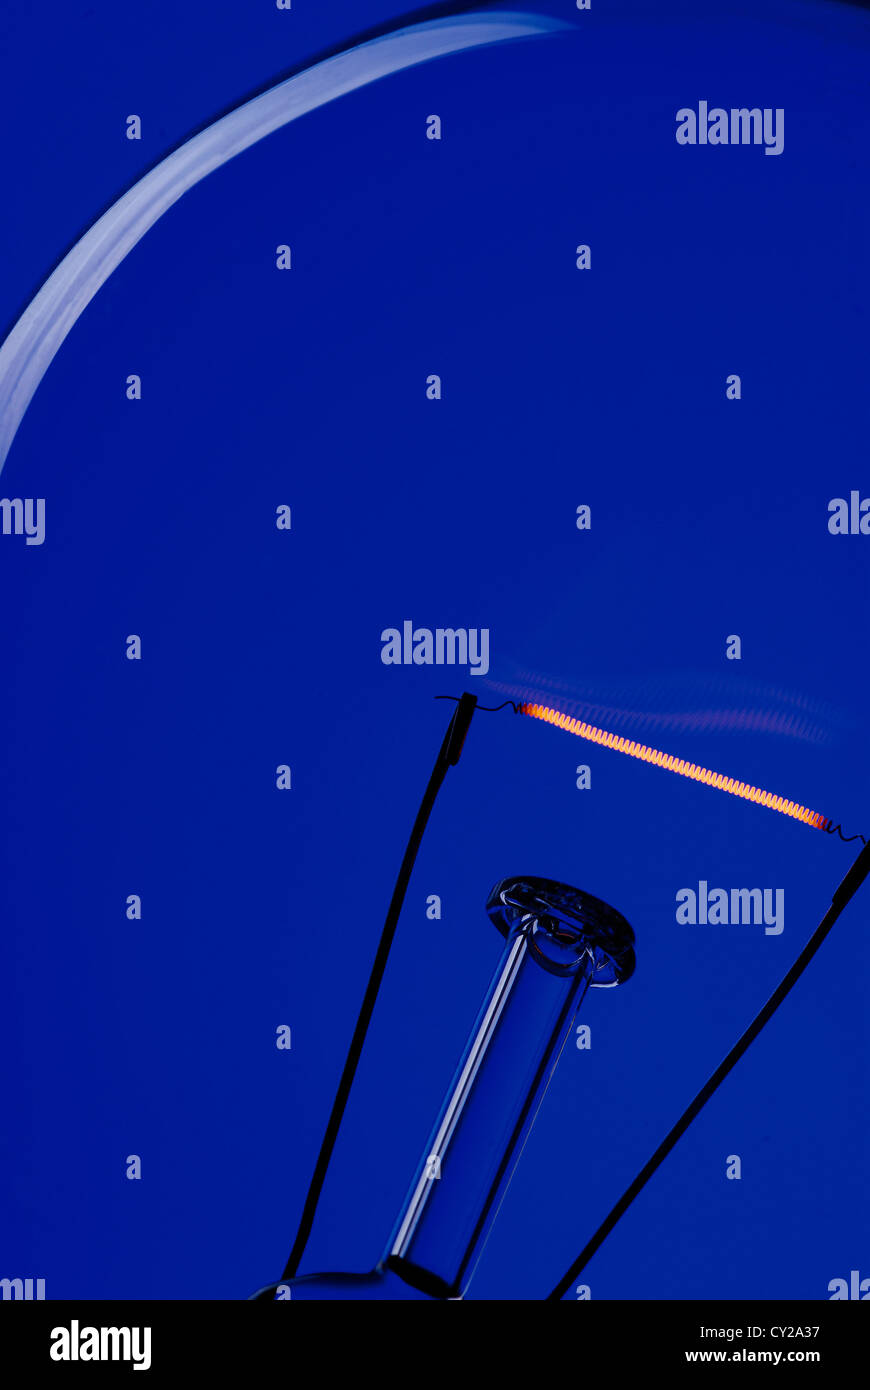 A light bulb on an electric blue background. - Stock Image